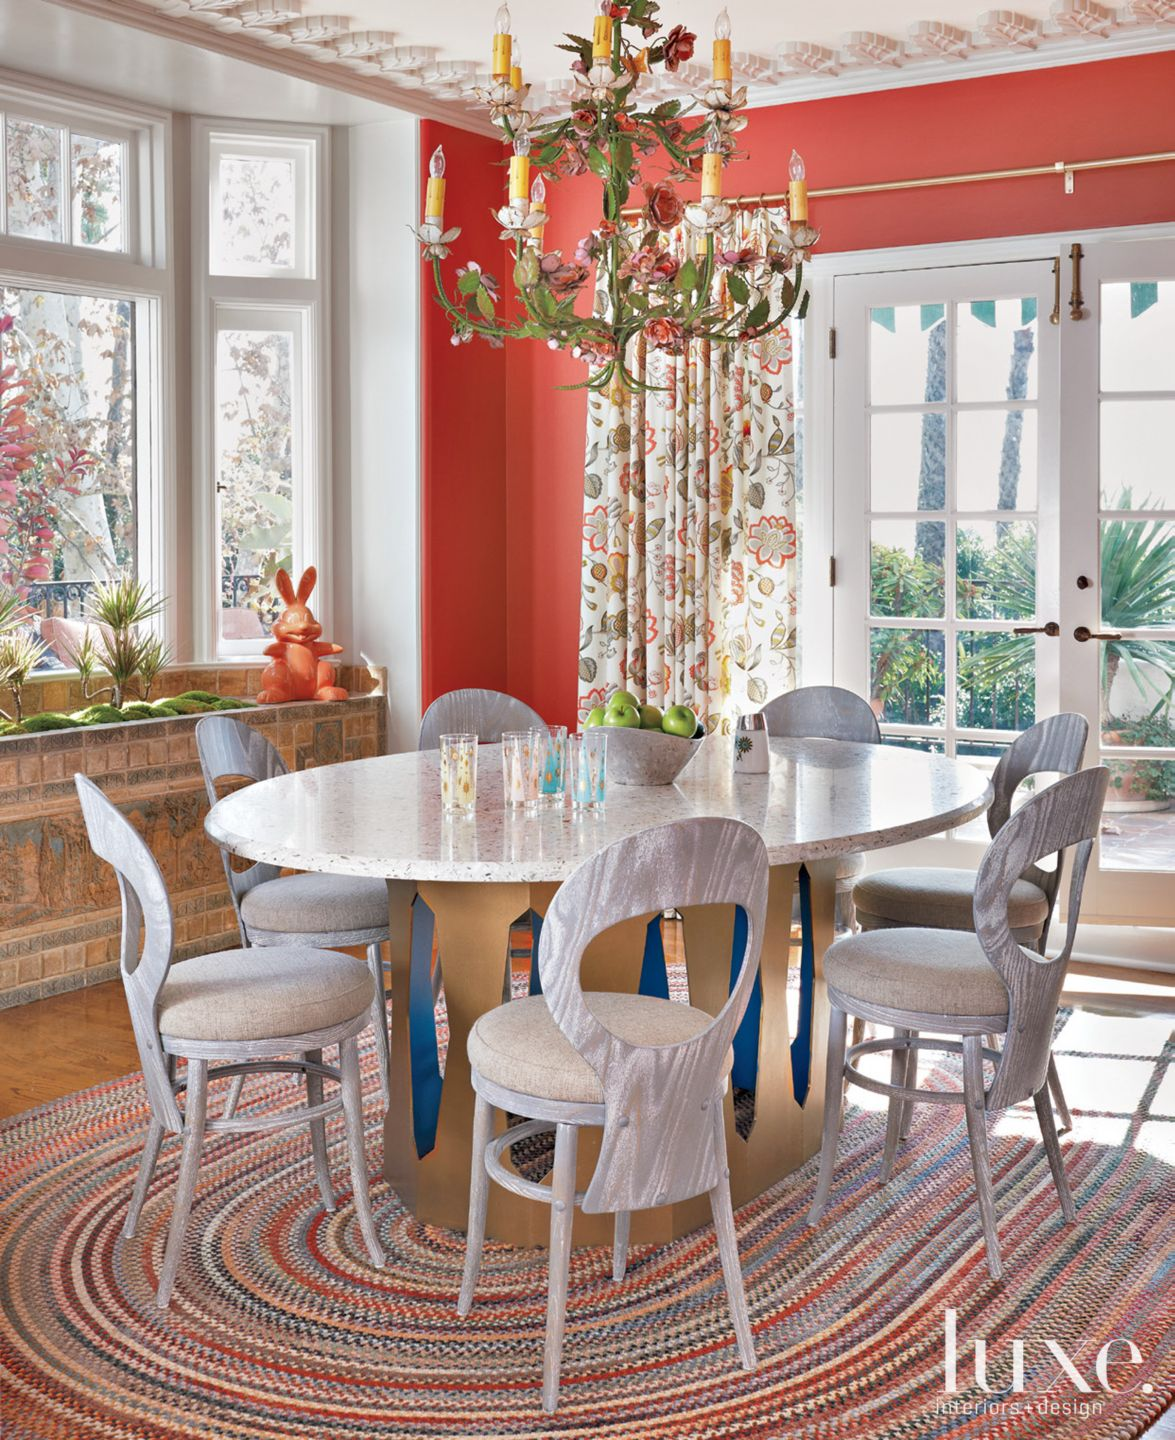 Multi-Colored Country Breakfast Area